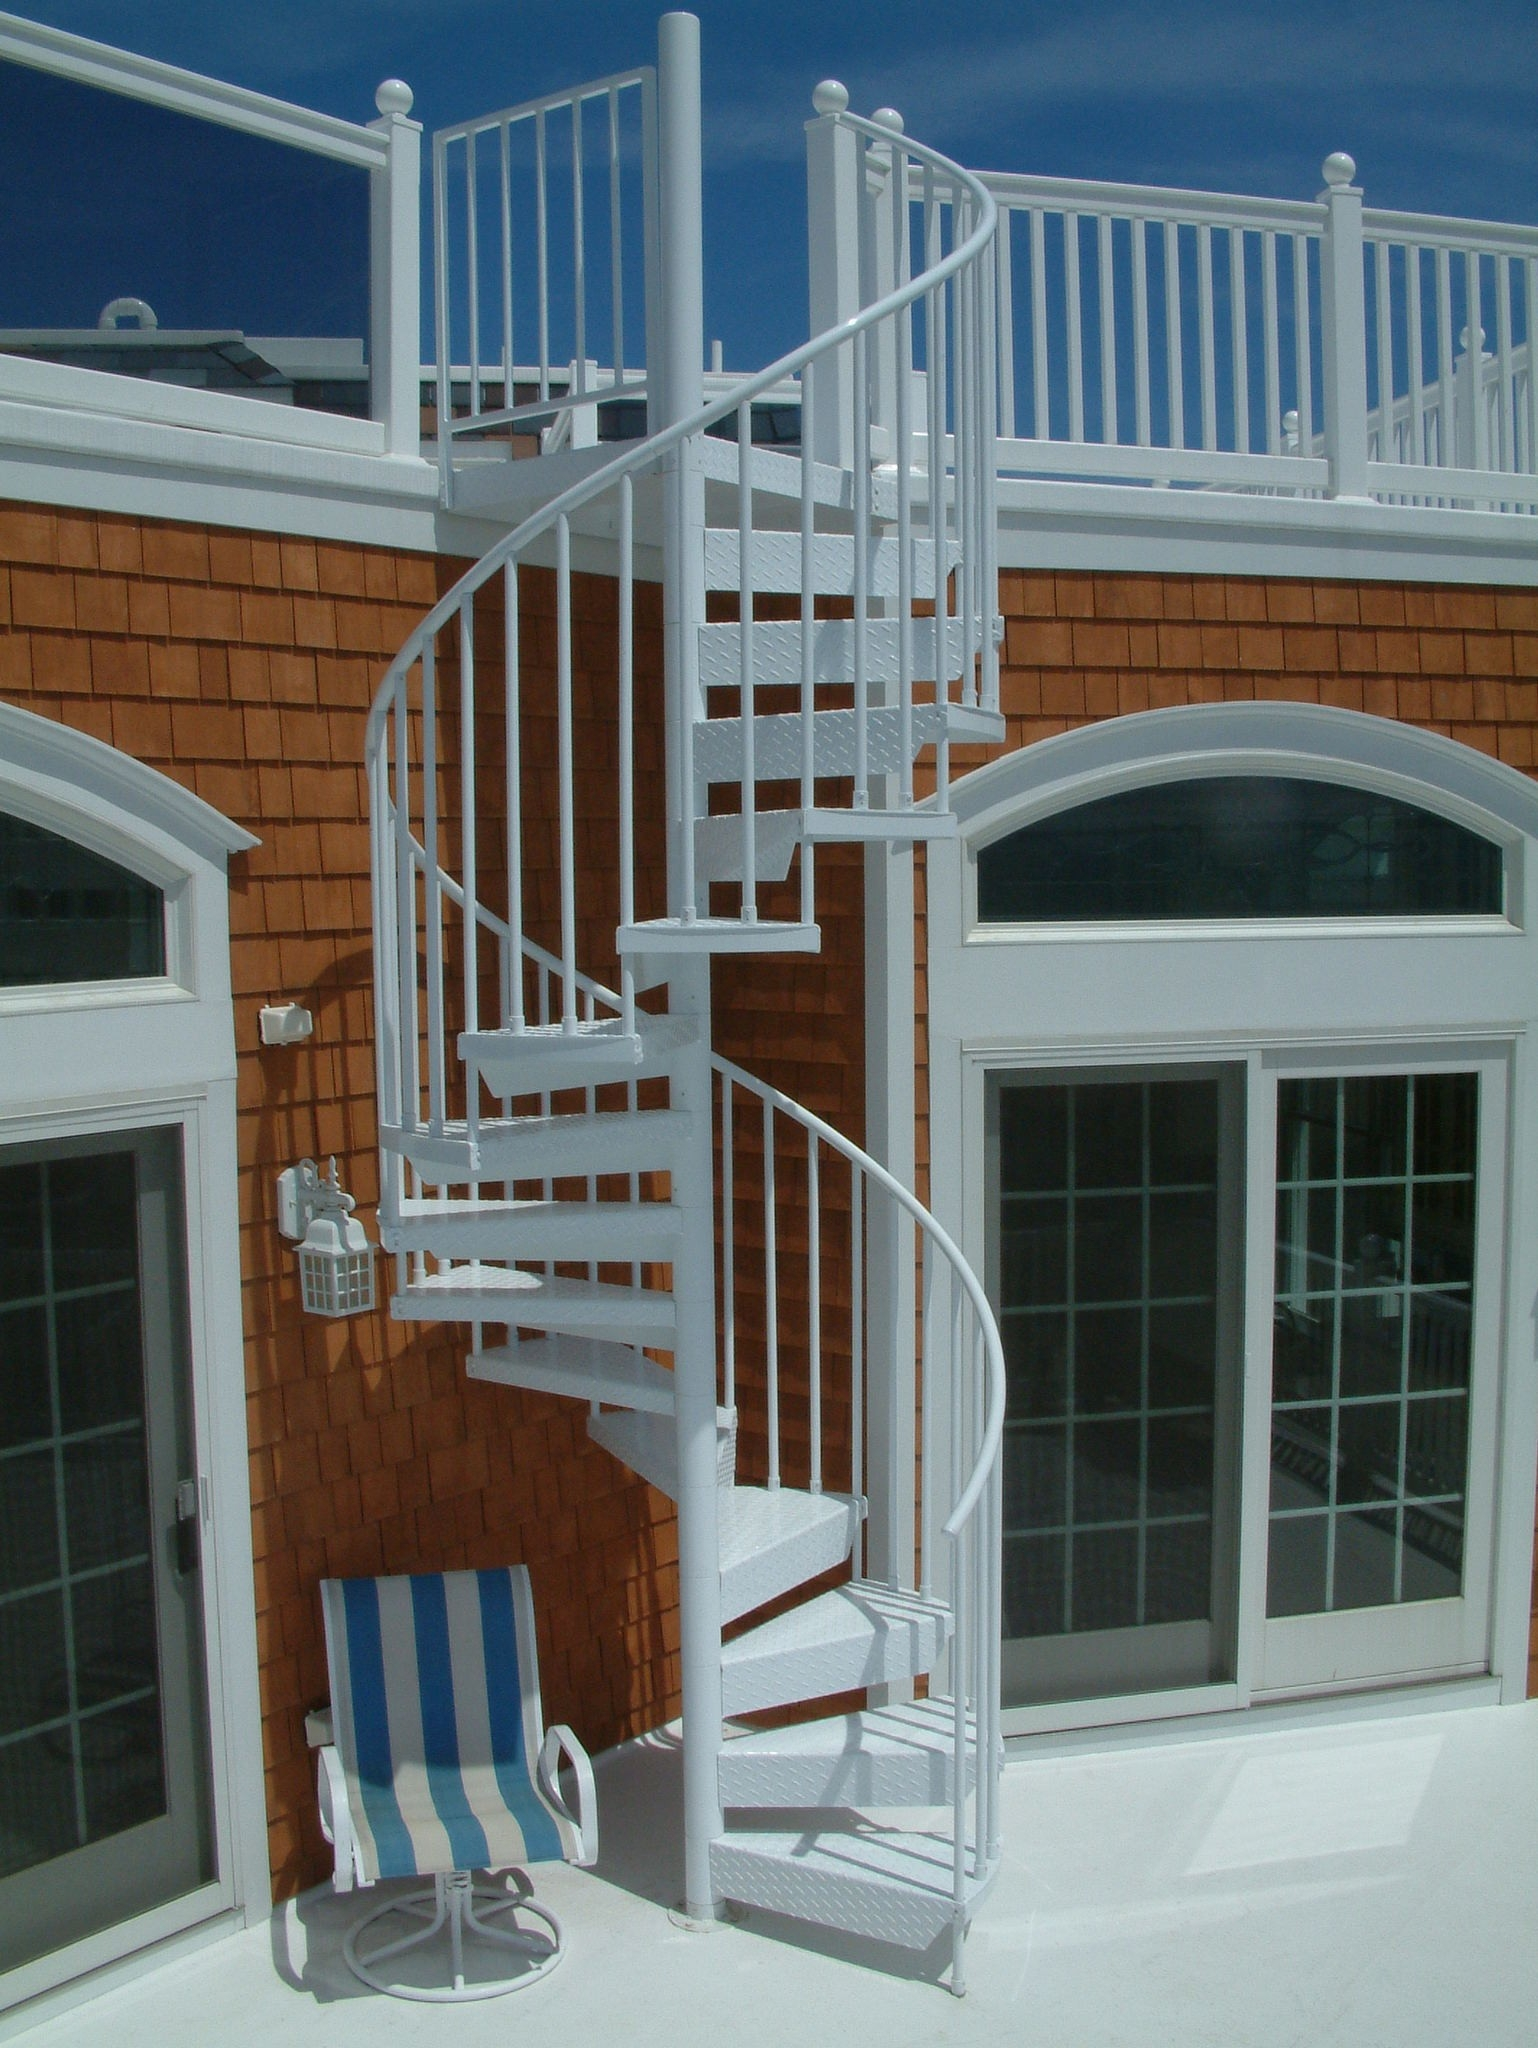 Exterior Spiral Staircases Look Stunning And Save Space In | Used Spiral Staircase For Sale | Vertical | Exterior | Contemporary | Wrought Iron | Curved